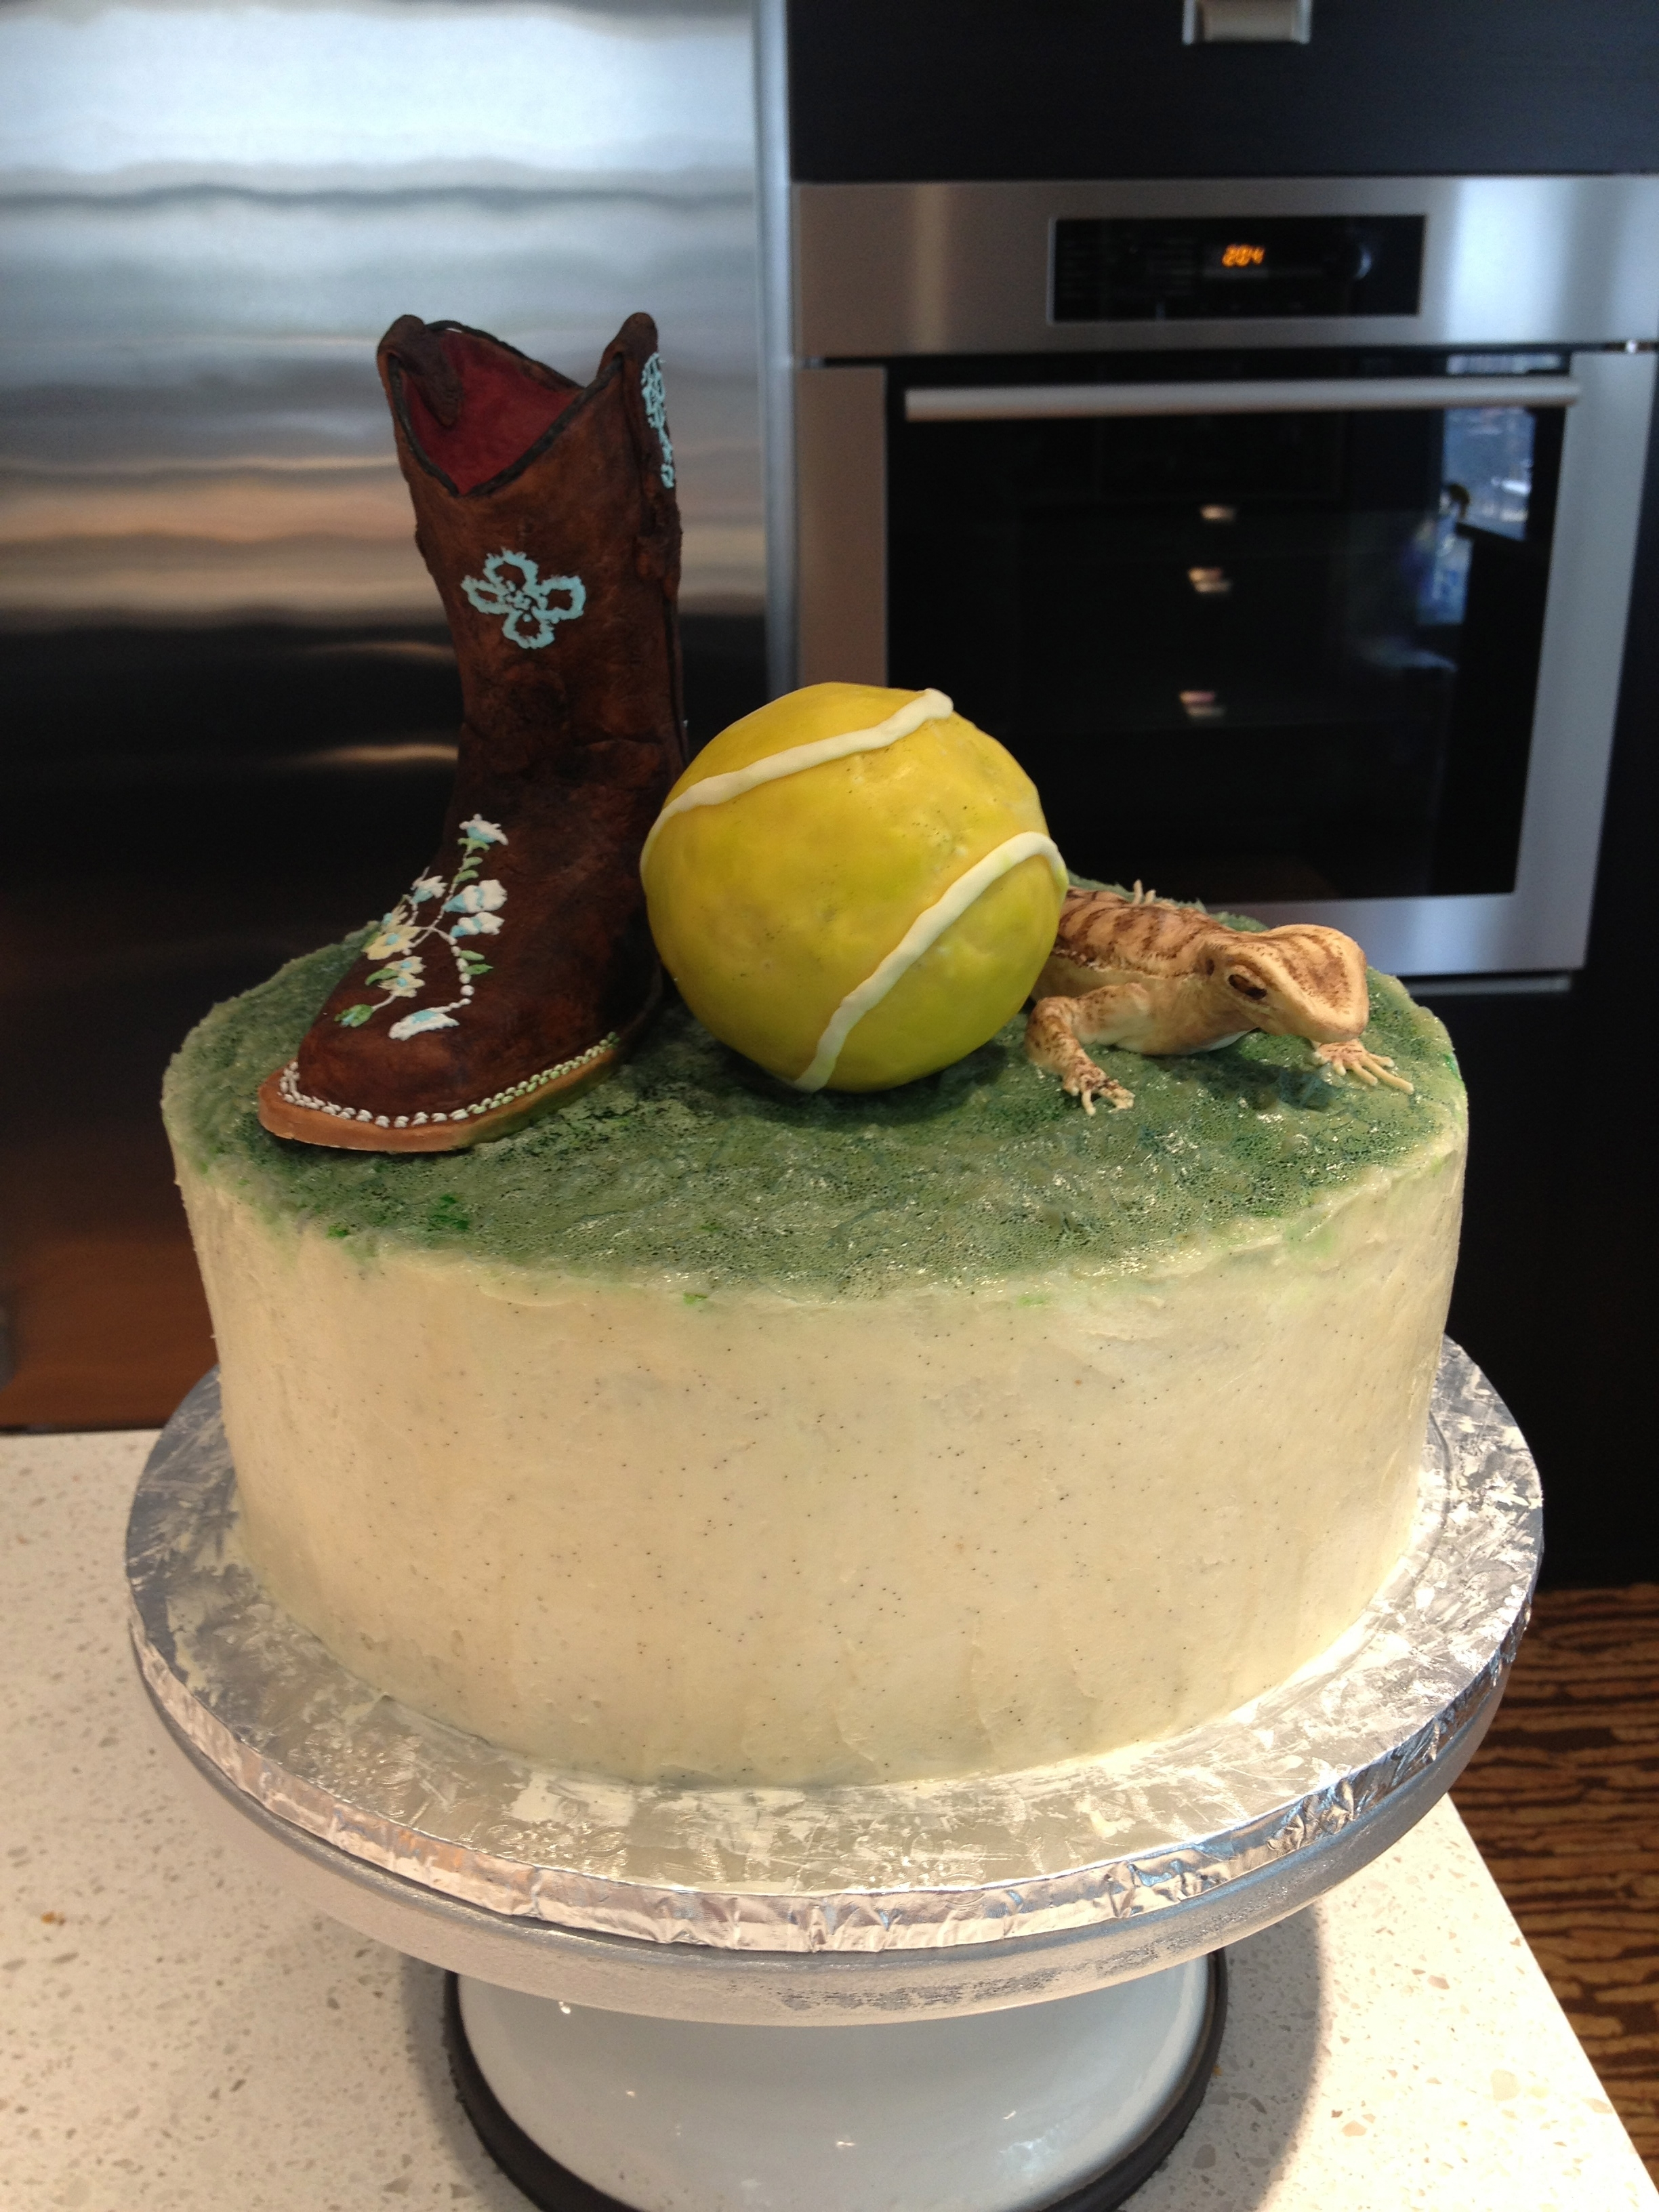 This Was A Cake To Celebrate The Birthdays Of 3 Different People The Boot Was For A Daughter That Rides Horses I Had Her Mom Send Me A Pho...